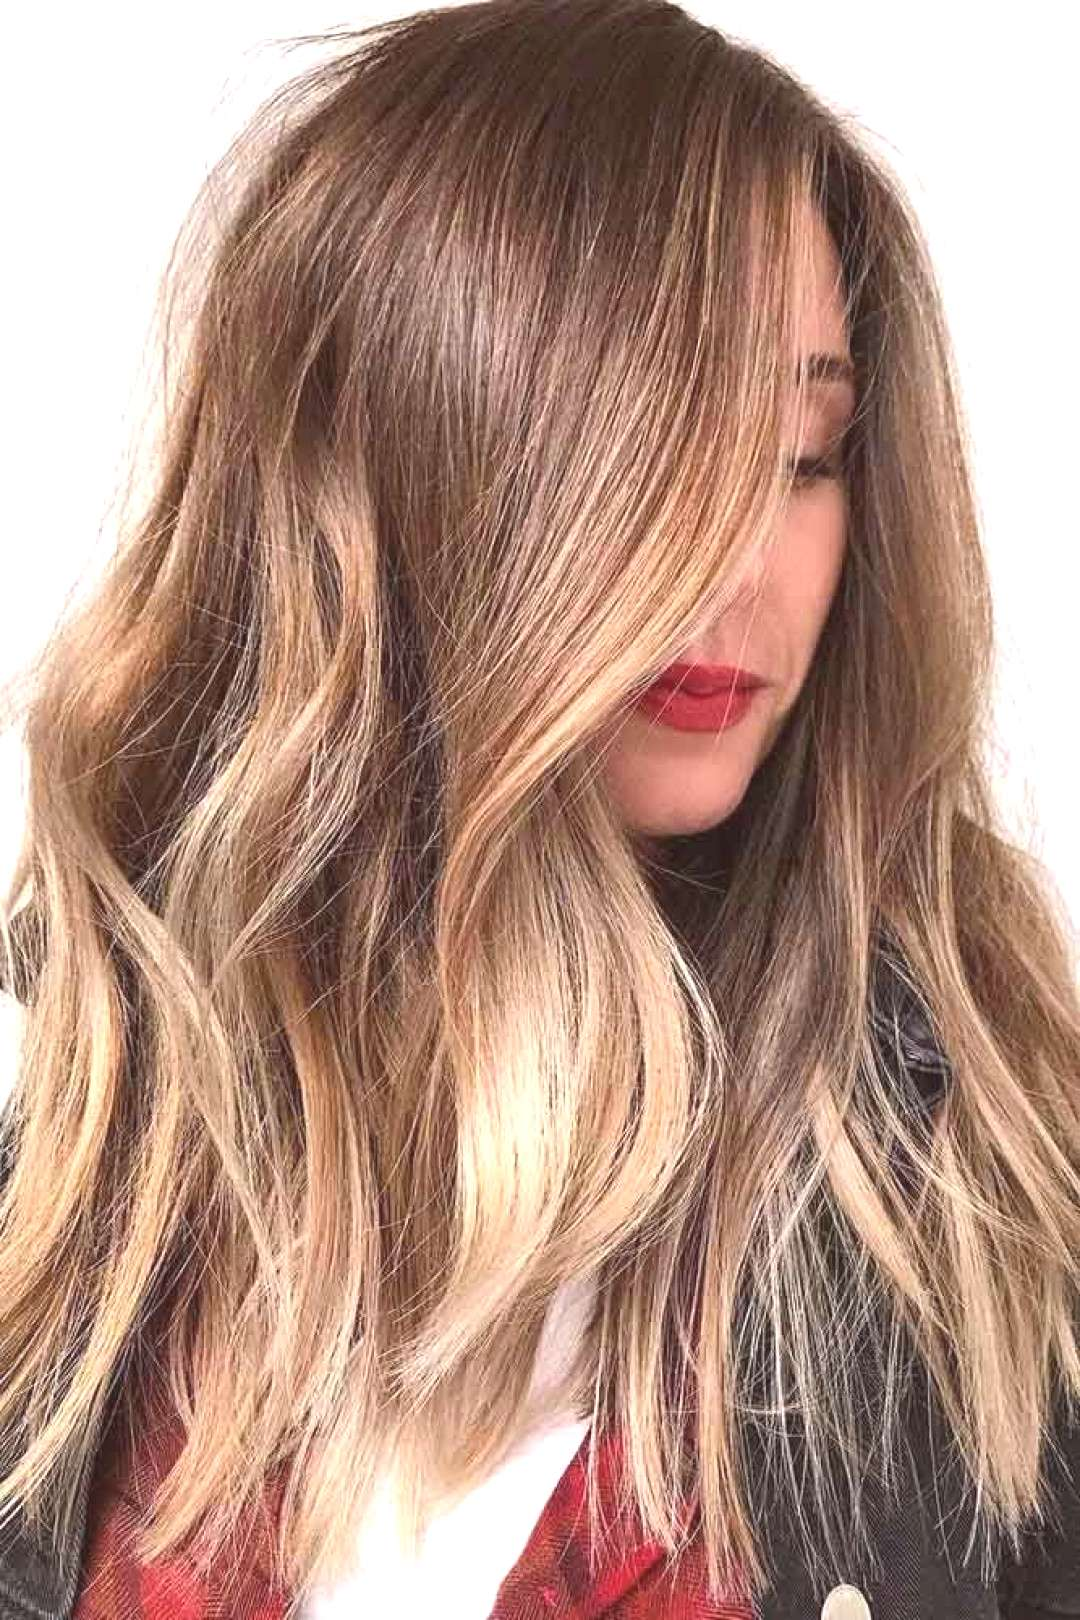 Honey Blonde Balayage Hair Color Balayage Is The Hottest New Hair Trend Here We Have Collected